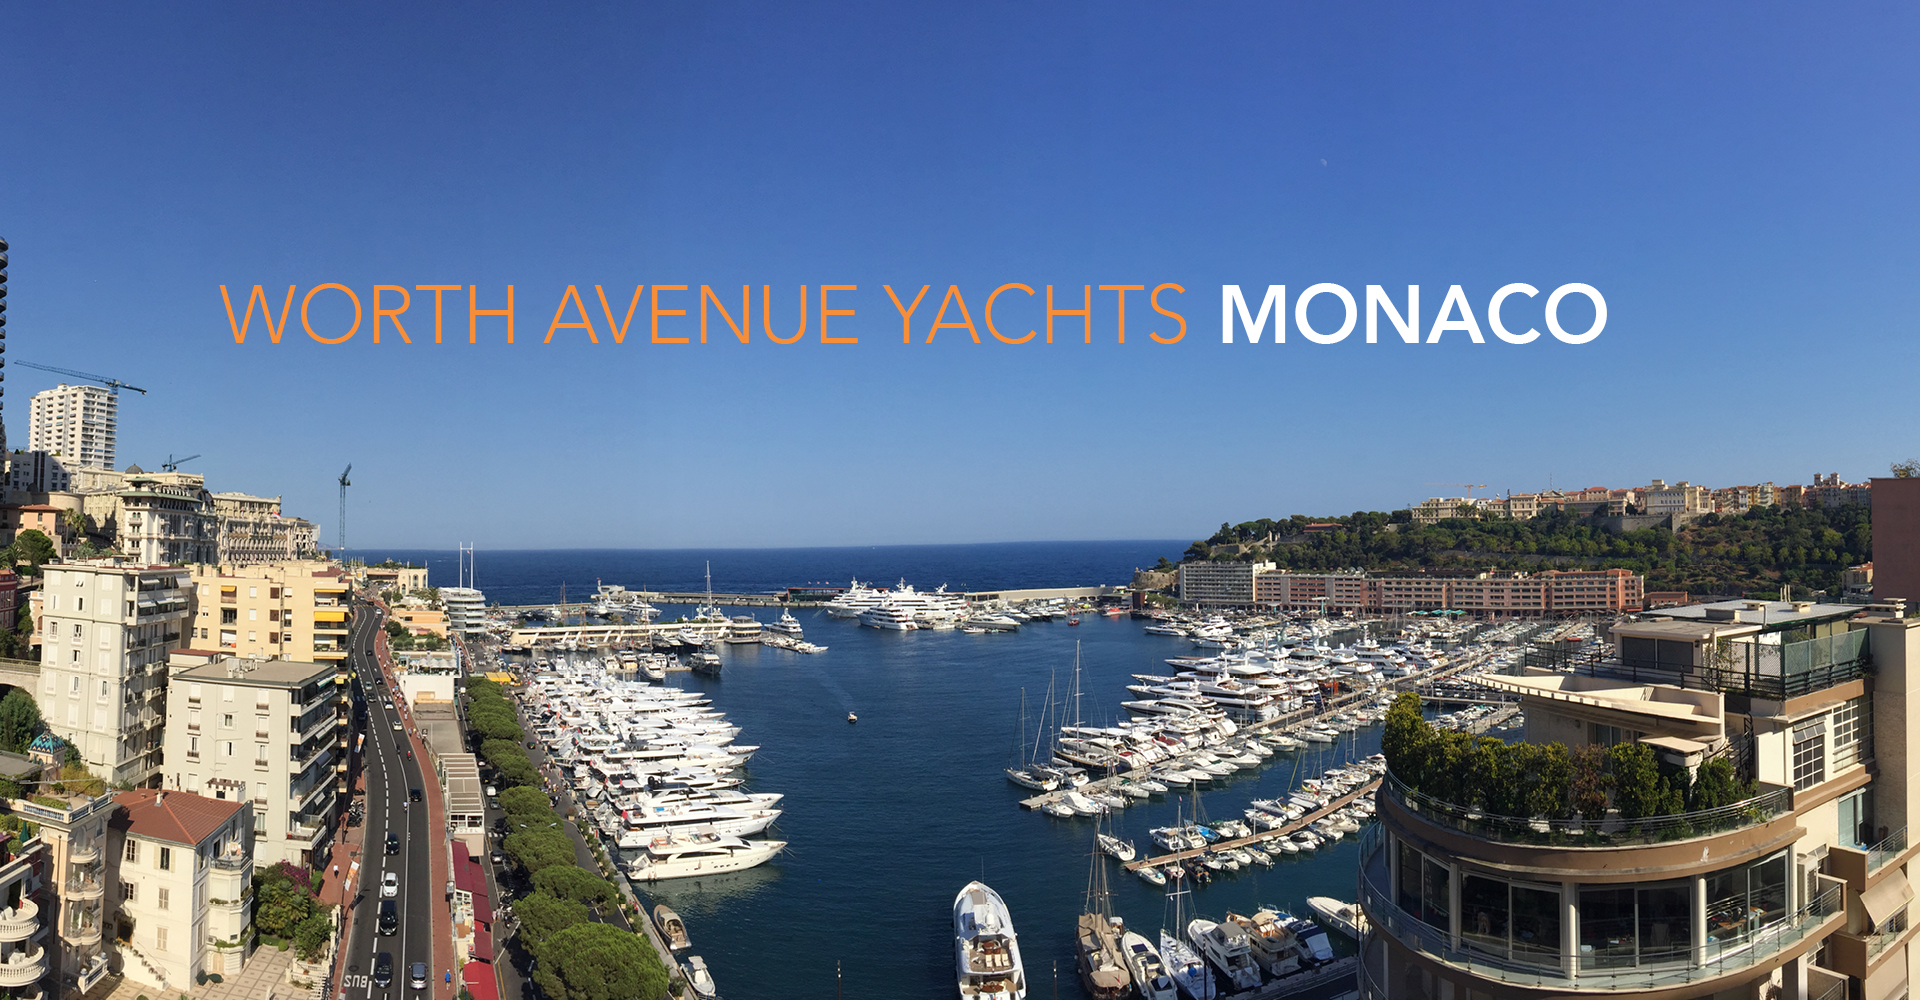 Worth Avenue Yachts Monaco Location